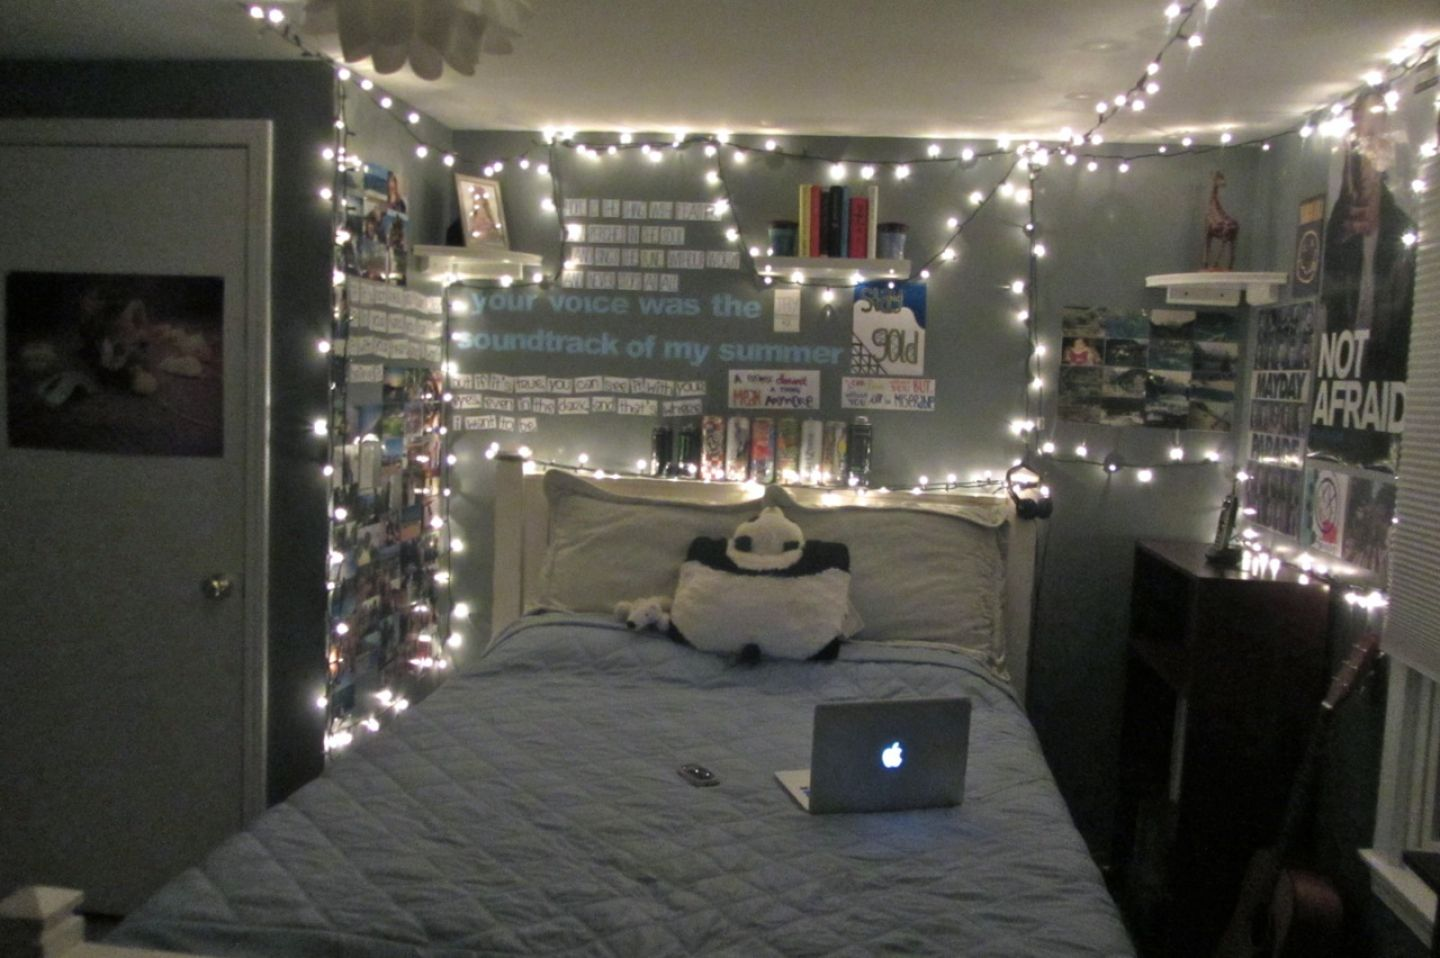 Dream bedrooms for teenage girls tumblr - Bedroom Tumblr Girl Bedrooms With Awesome Light And Imac On The Bed Cool Bedrooms Tumblr Design